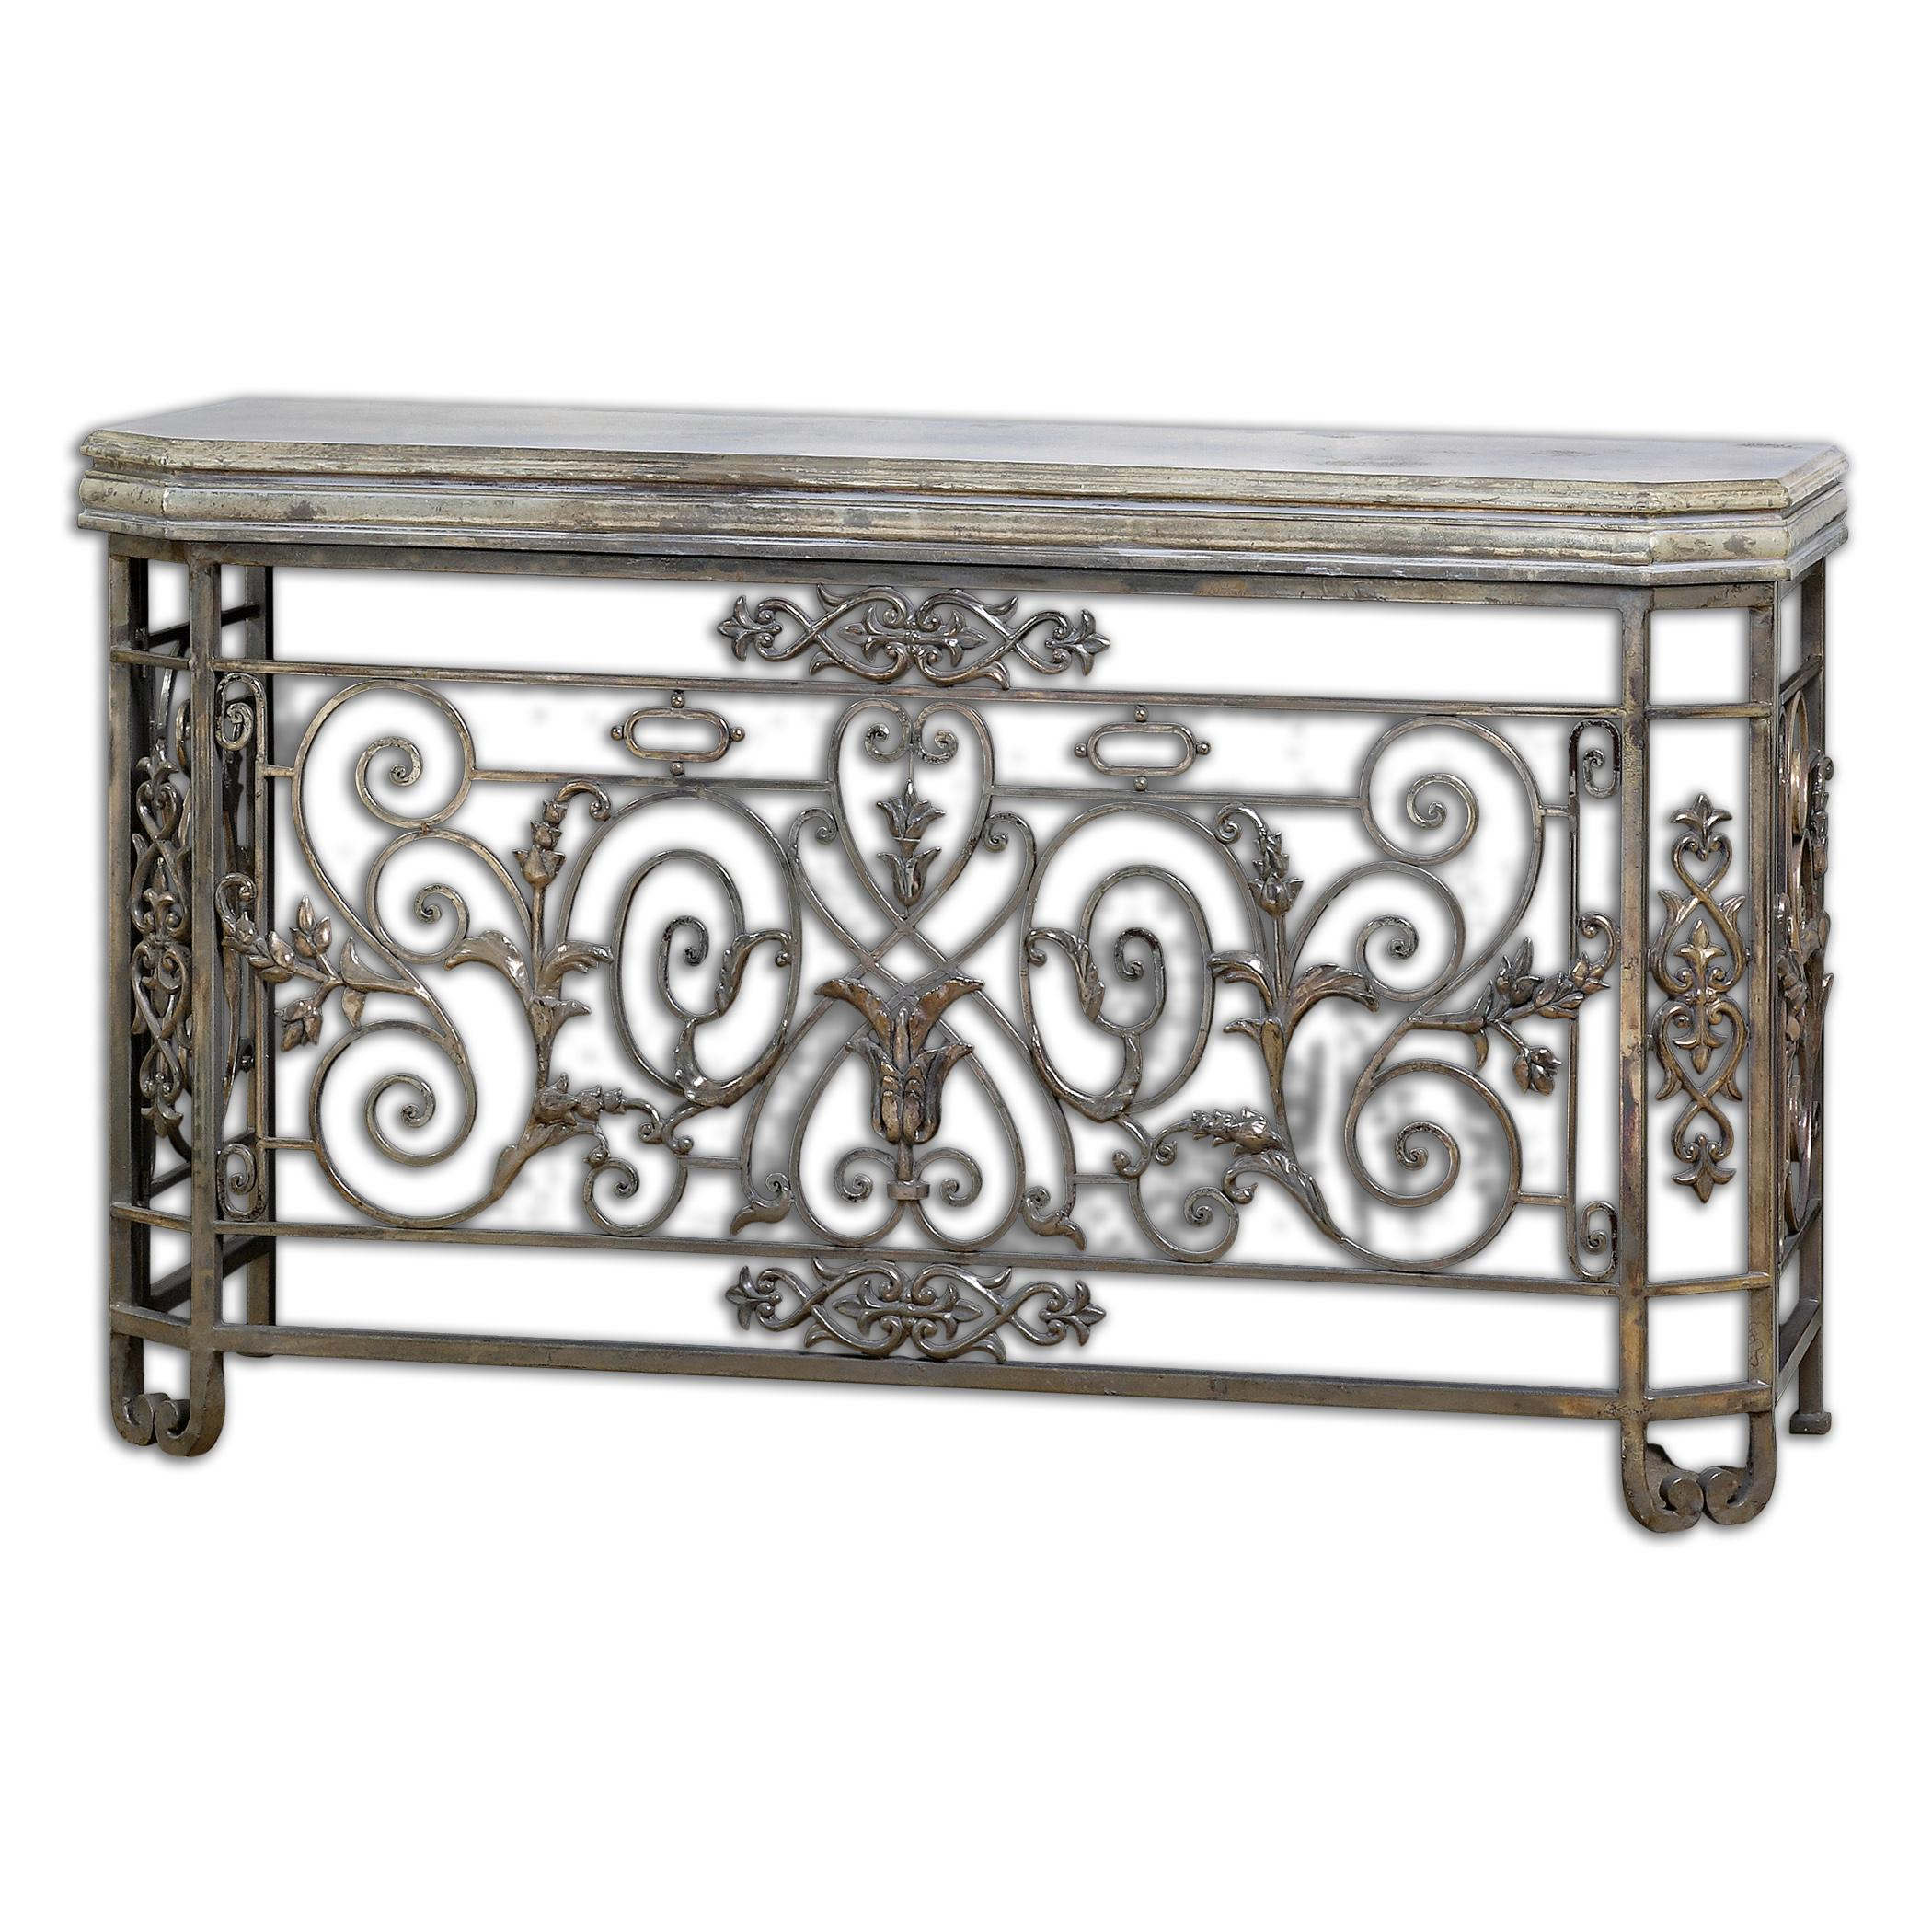 Uttermost Accent Furniture Kissara Metal Console Table - Item Number: 24347